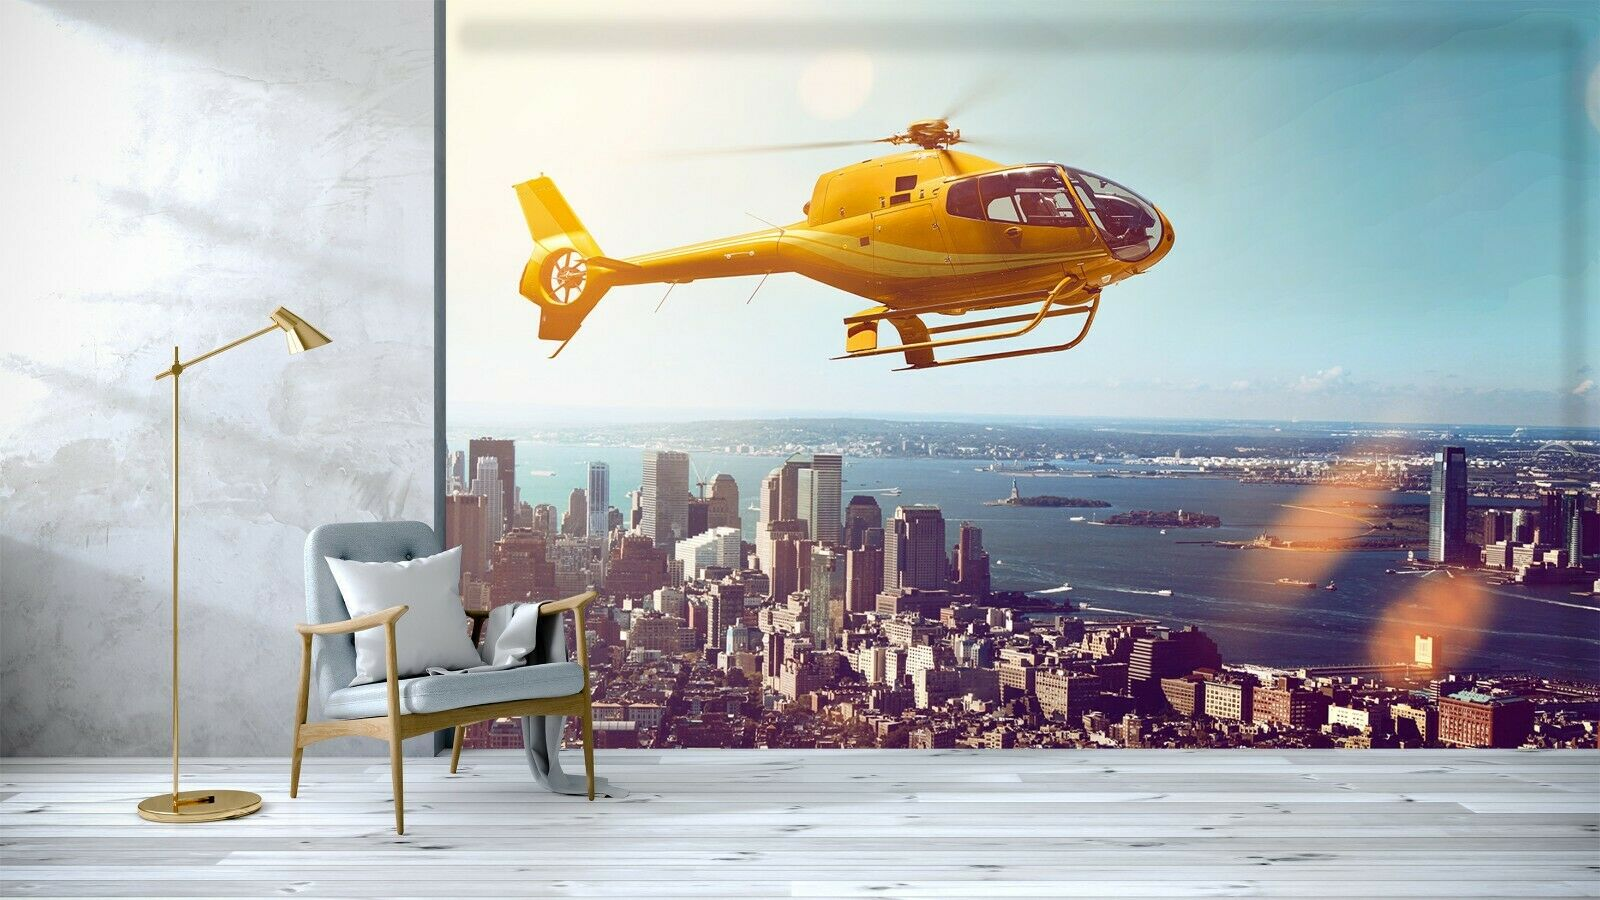 3D Aircraft City B115 Transport Wallpaper Mural Self-adhesive Removable Wendy